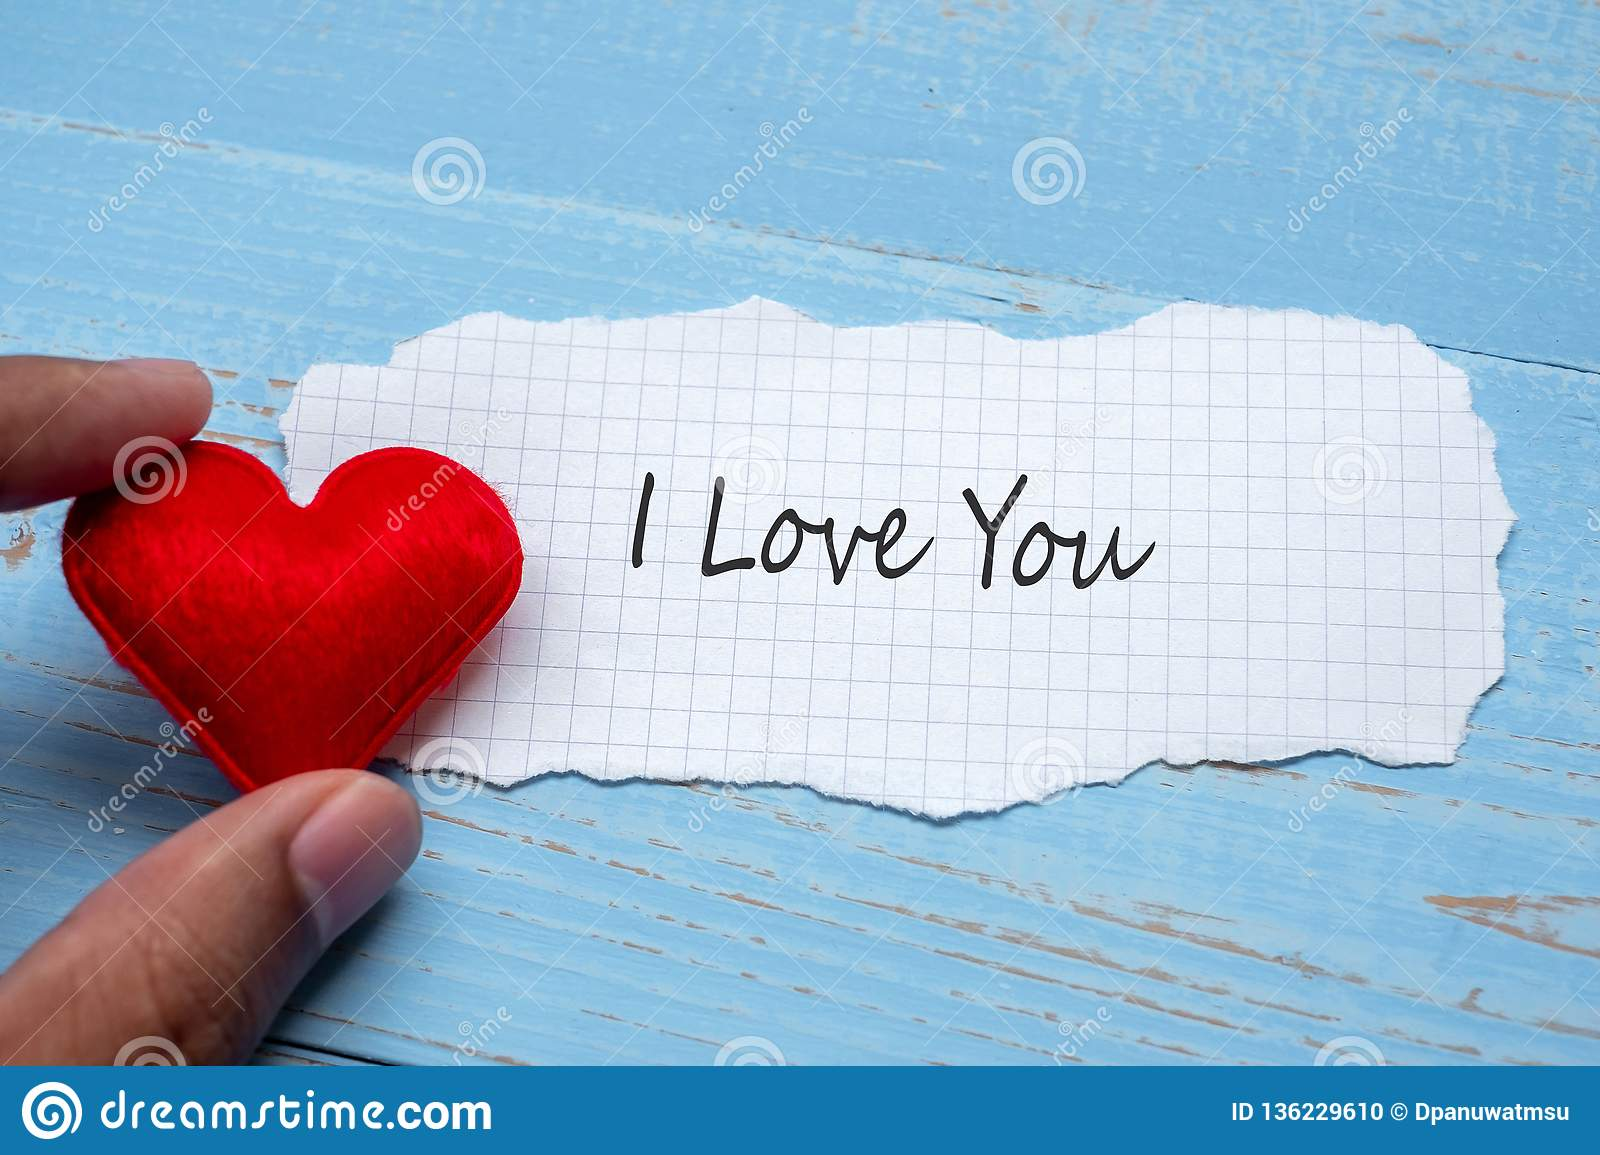 I LOVE YOU word on paper note with red heart shape decoration on blue wooden table background. Wedding, Romantic and Happy